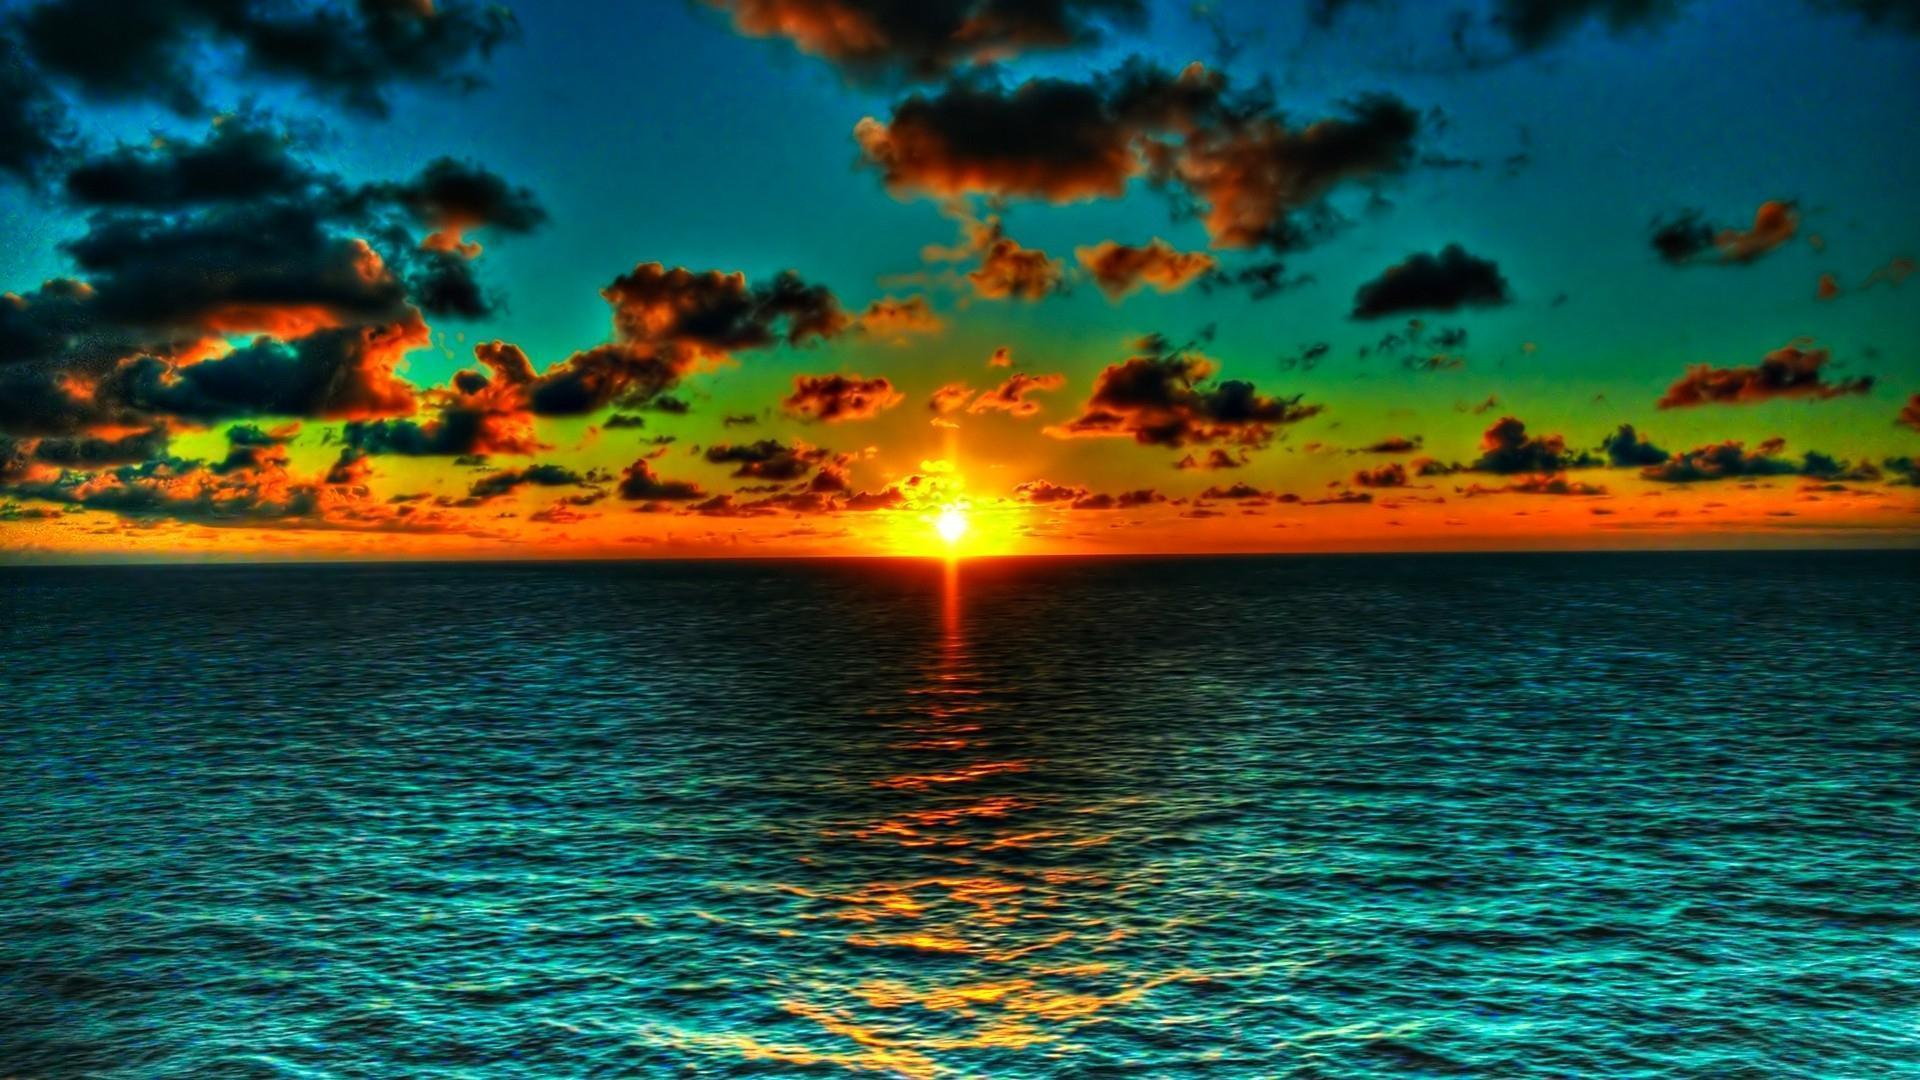 Blue Ocean Sunset Wallpapers Top Free Blue Ocean Sunset Backgrounds Wallpaperaccess ✓ free for commercial use ✓ high quality images. blue ocean sunset wallpapers top free